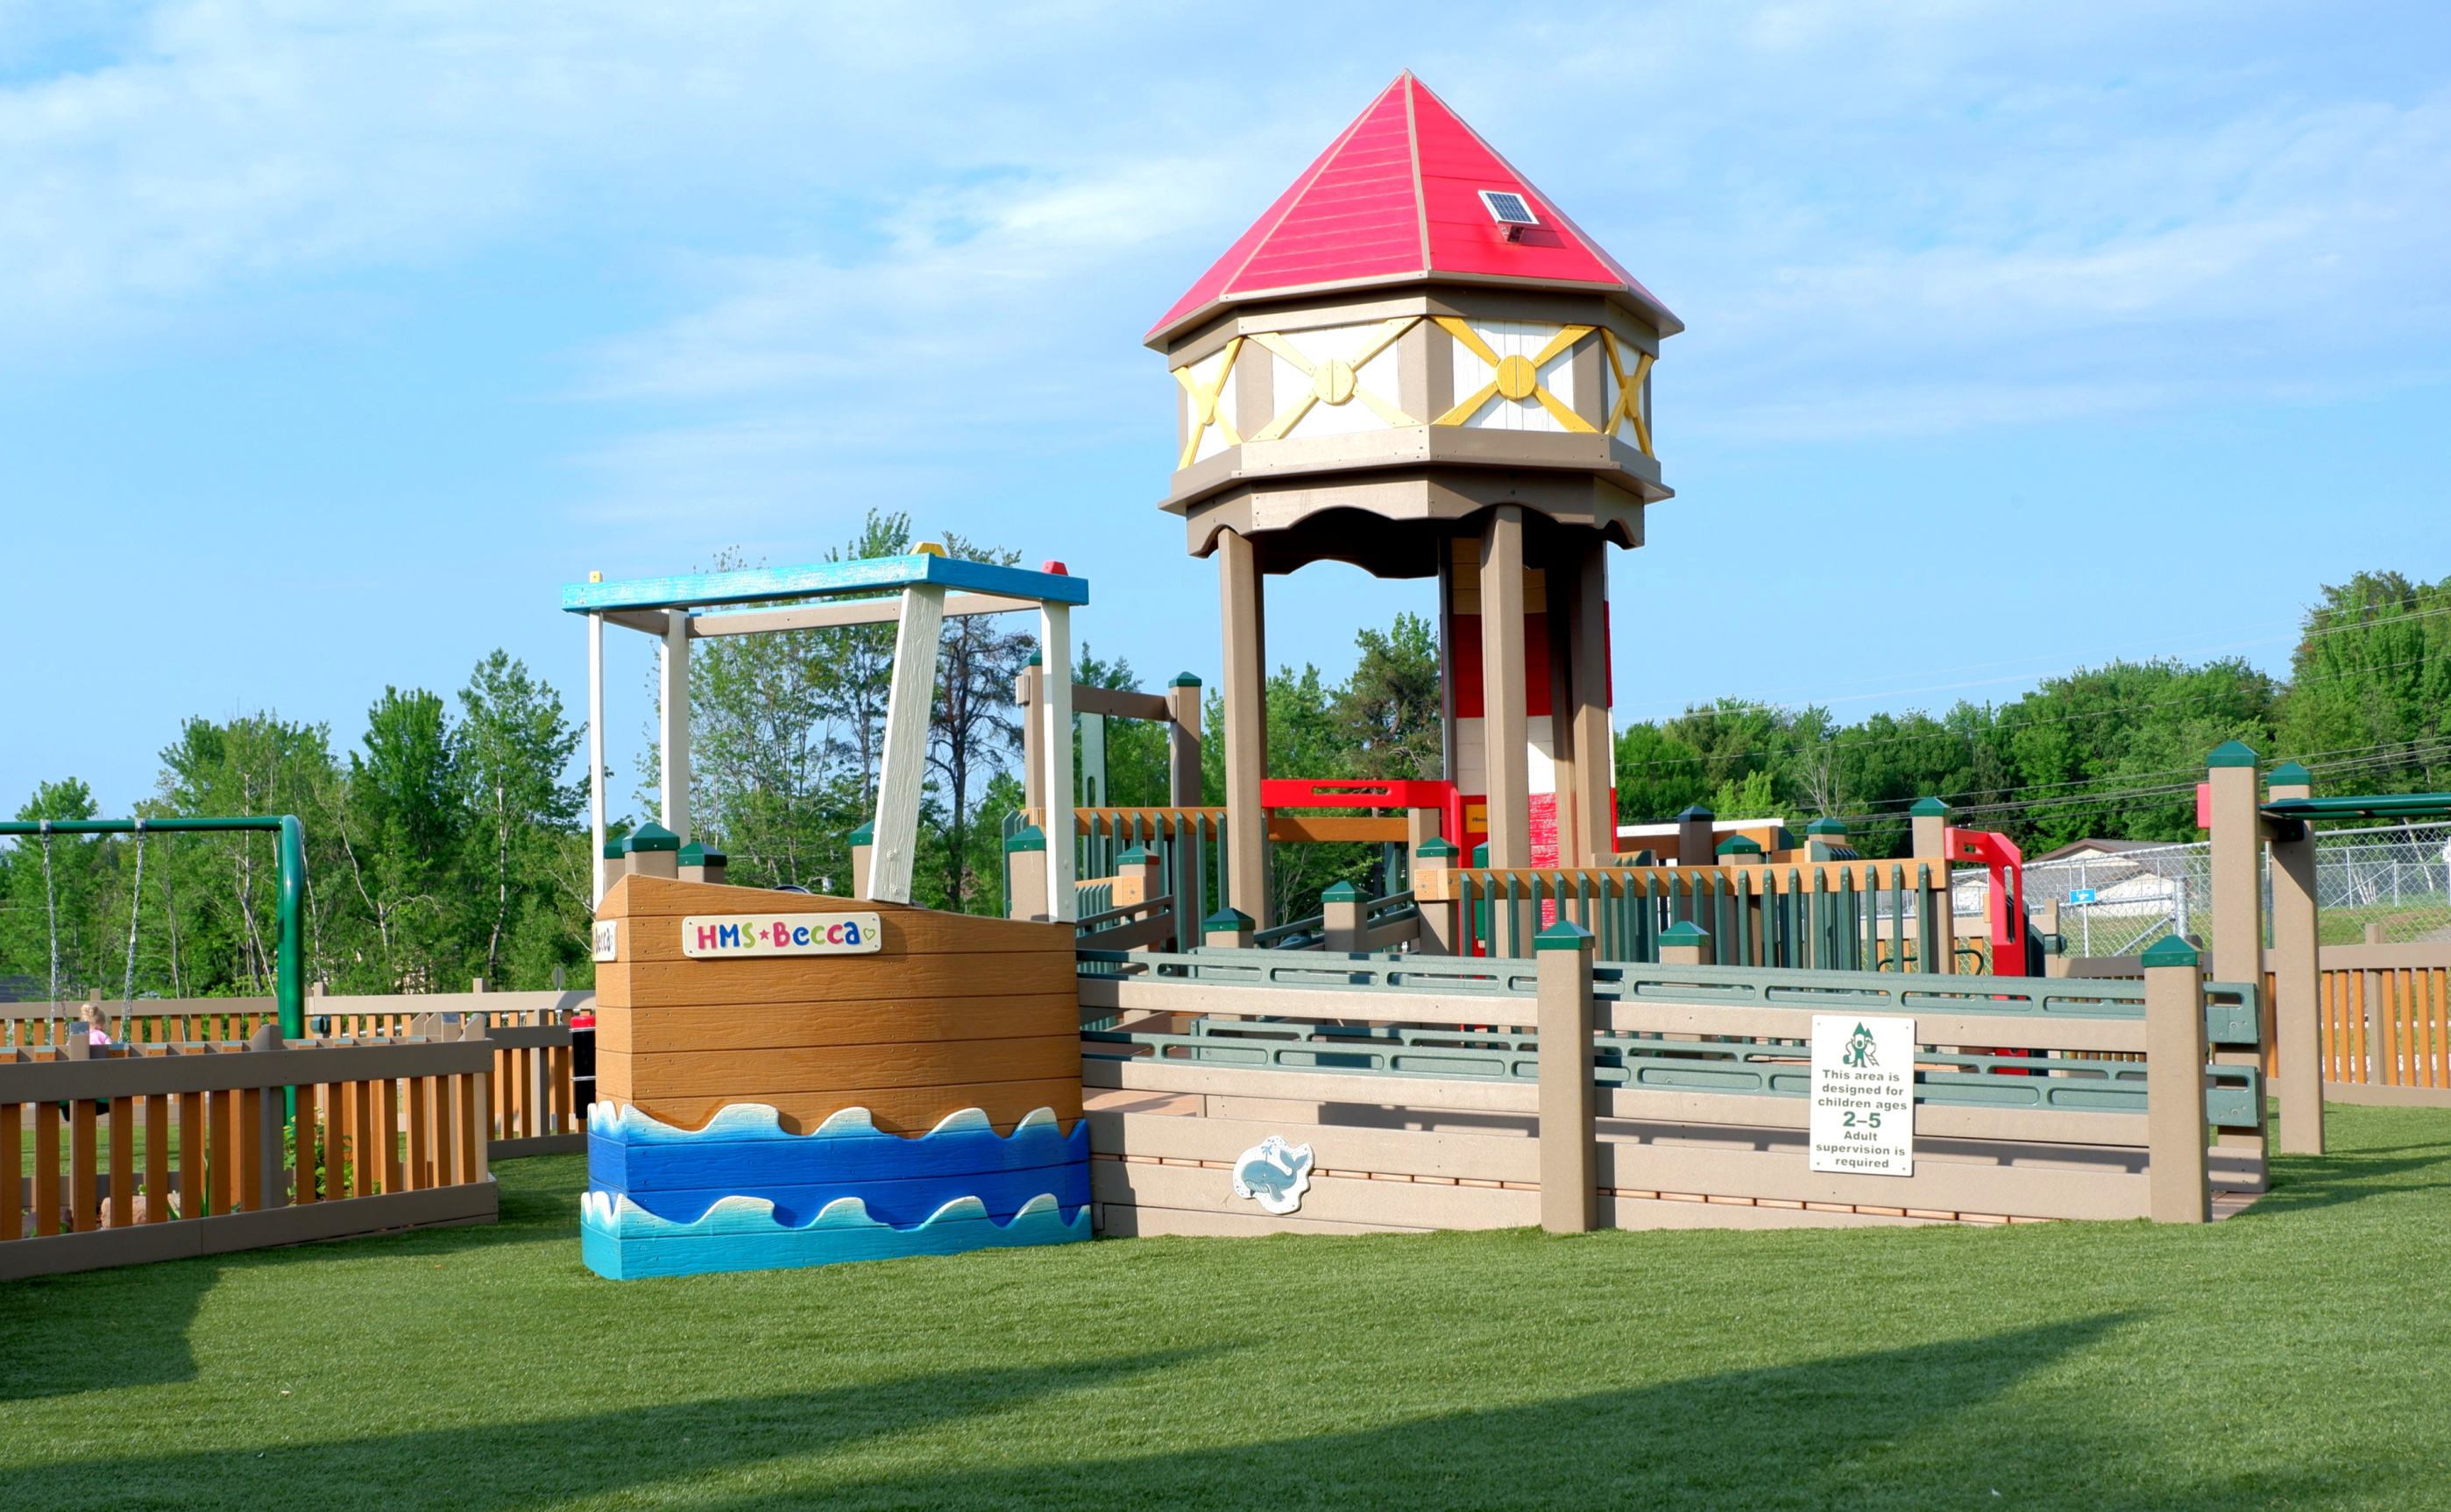 A playground named in honour of Rebecca Schofield features many New Brunswick-inspired elements like boats and lighthouses.